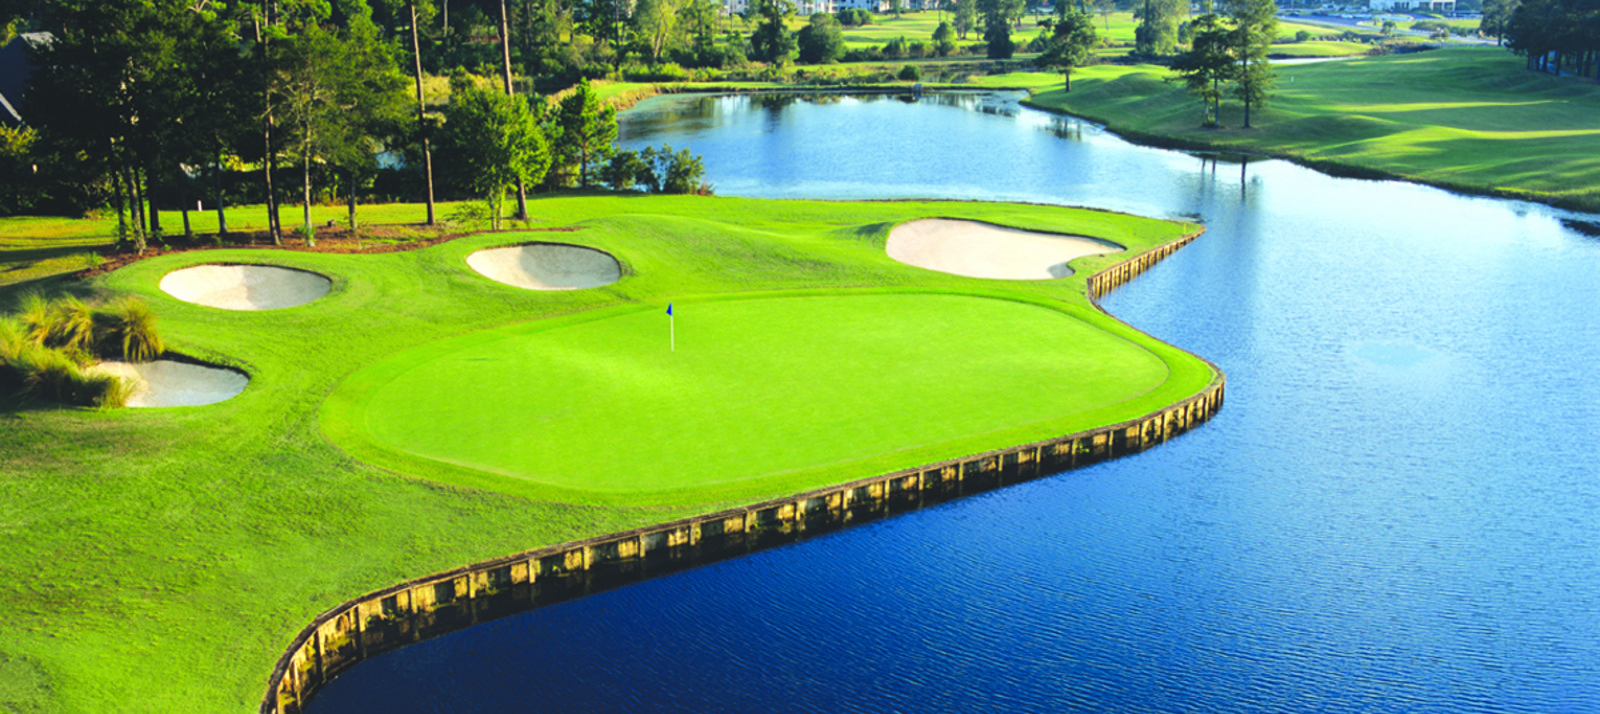 Image of Sea Trail Resort - Jones Course